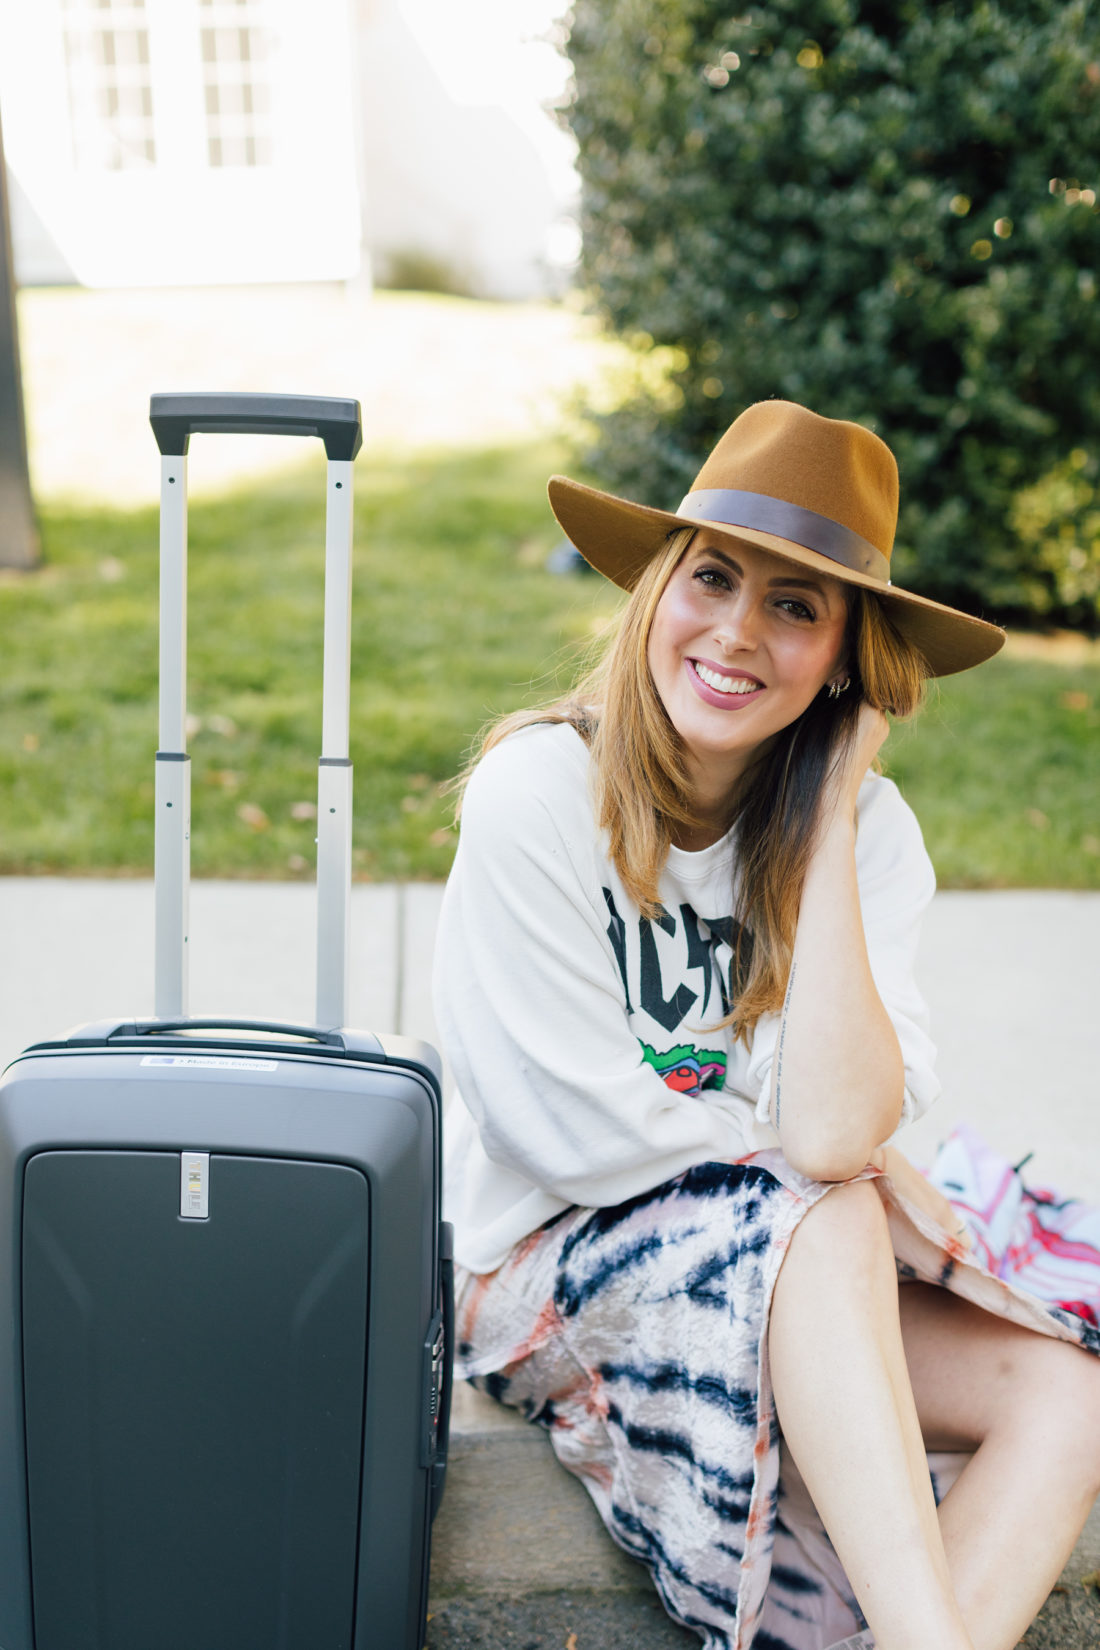 Eva Amurri Martino wears festival chic clothing and poses with Thule luggage outside her connecticut home